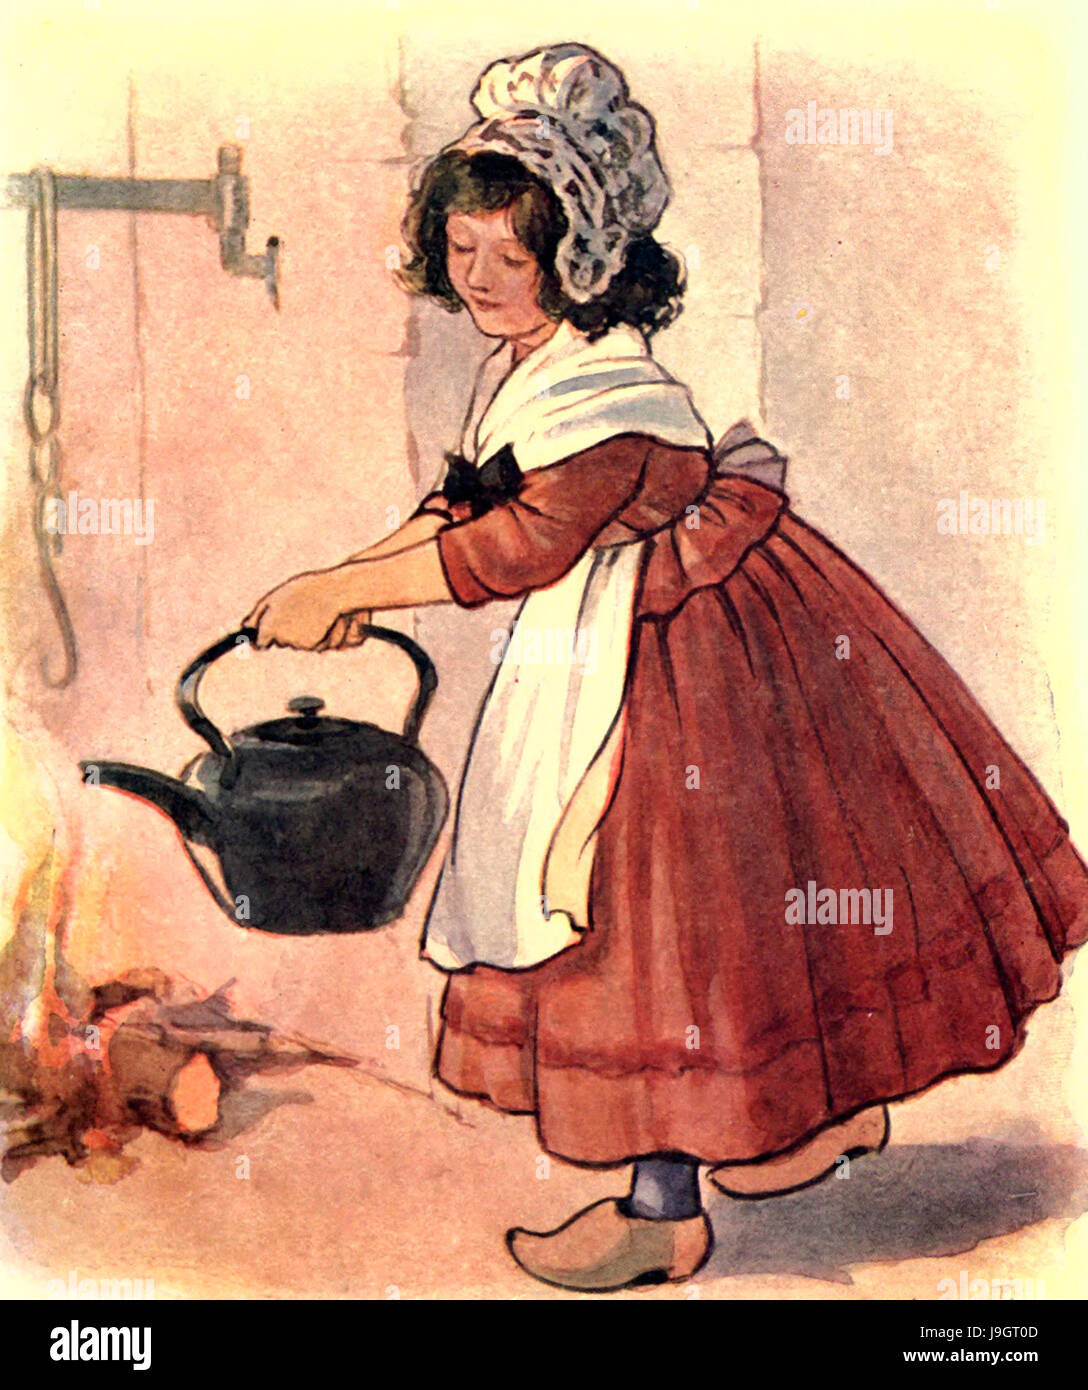 Polly, Polly, Put the kettle on - Nursery Rhyme - Stock Image